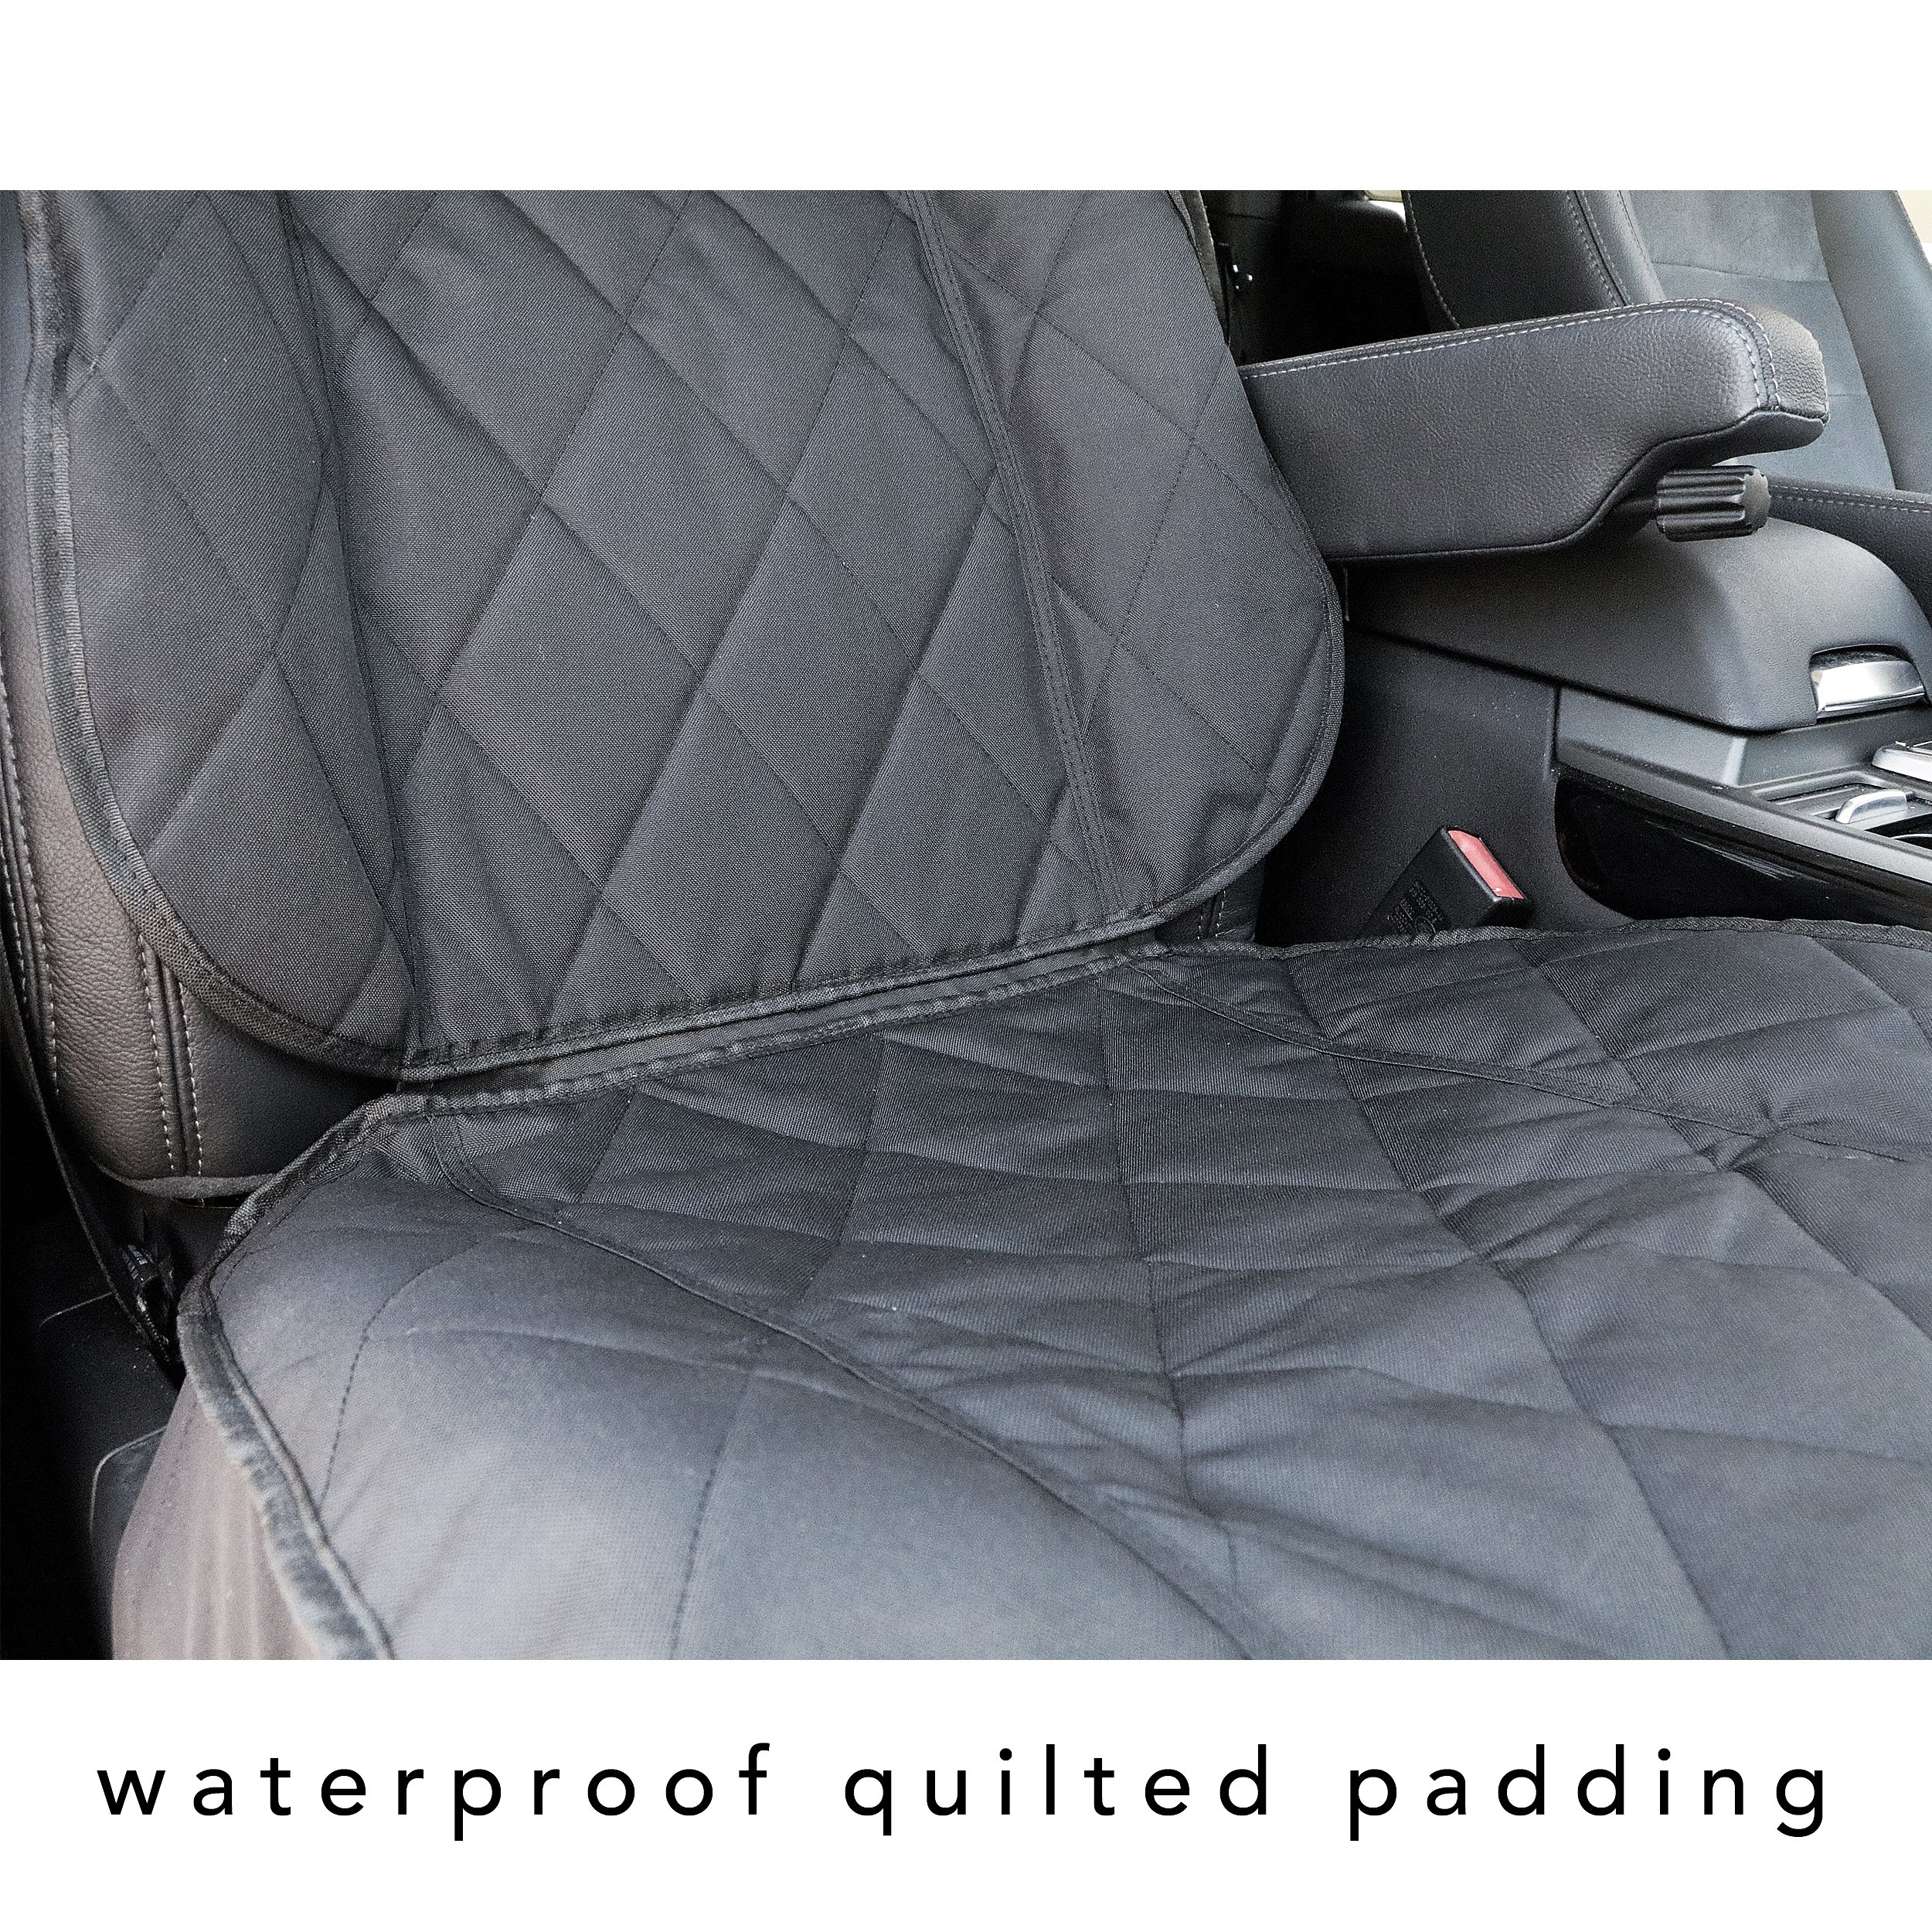 BarksBar Pet Front Seat Cover for Cars - Black, WaterProof & Nonslip Backing by BarksBar (Image #5)